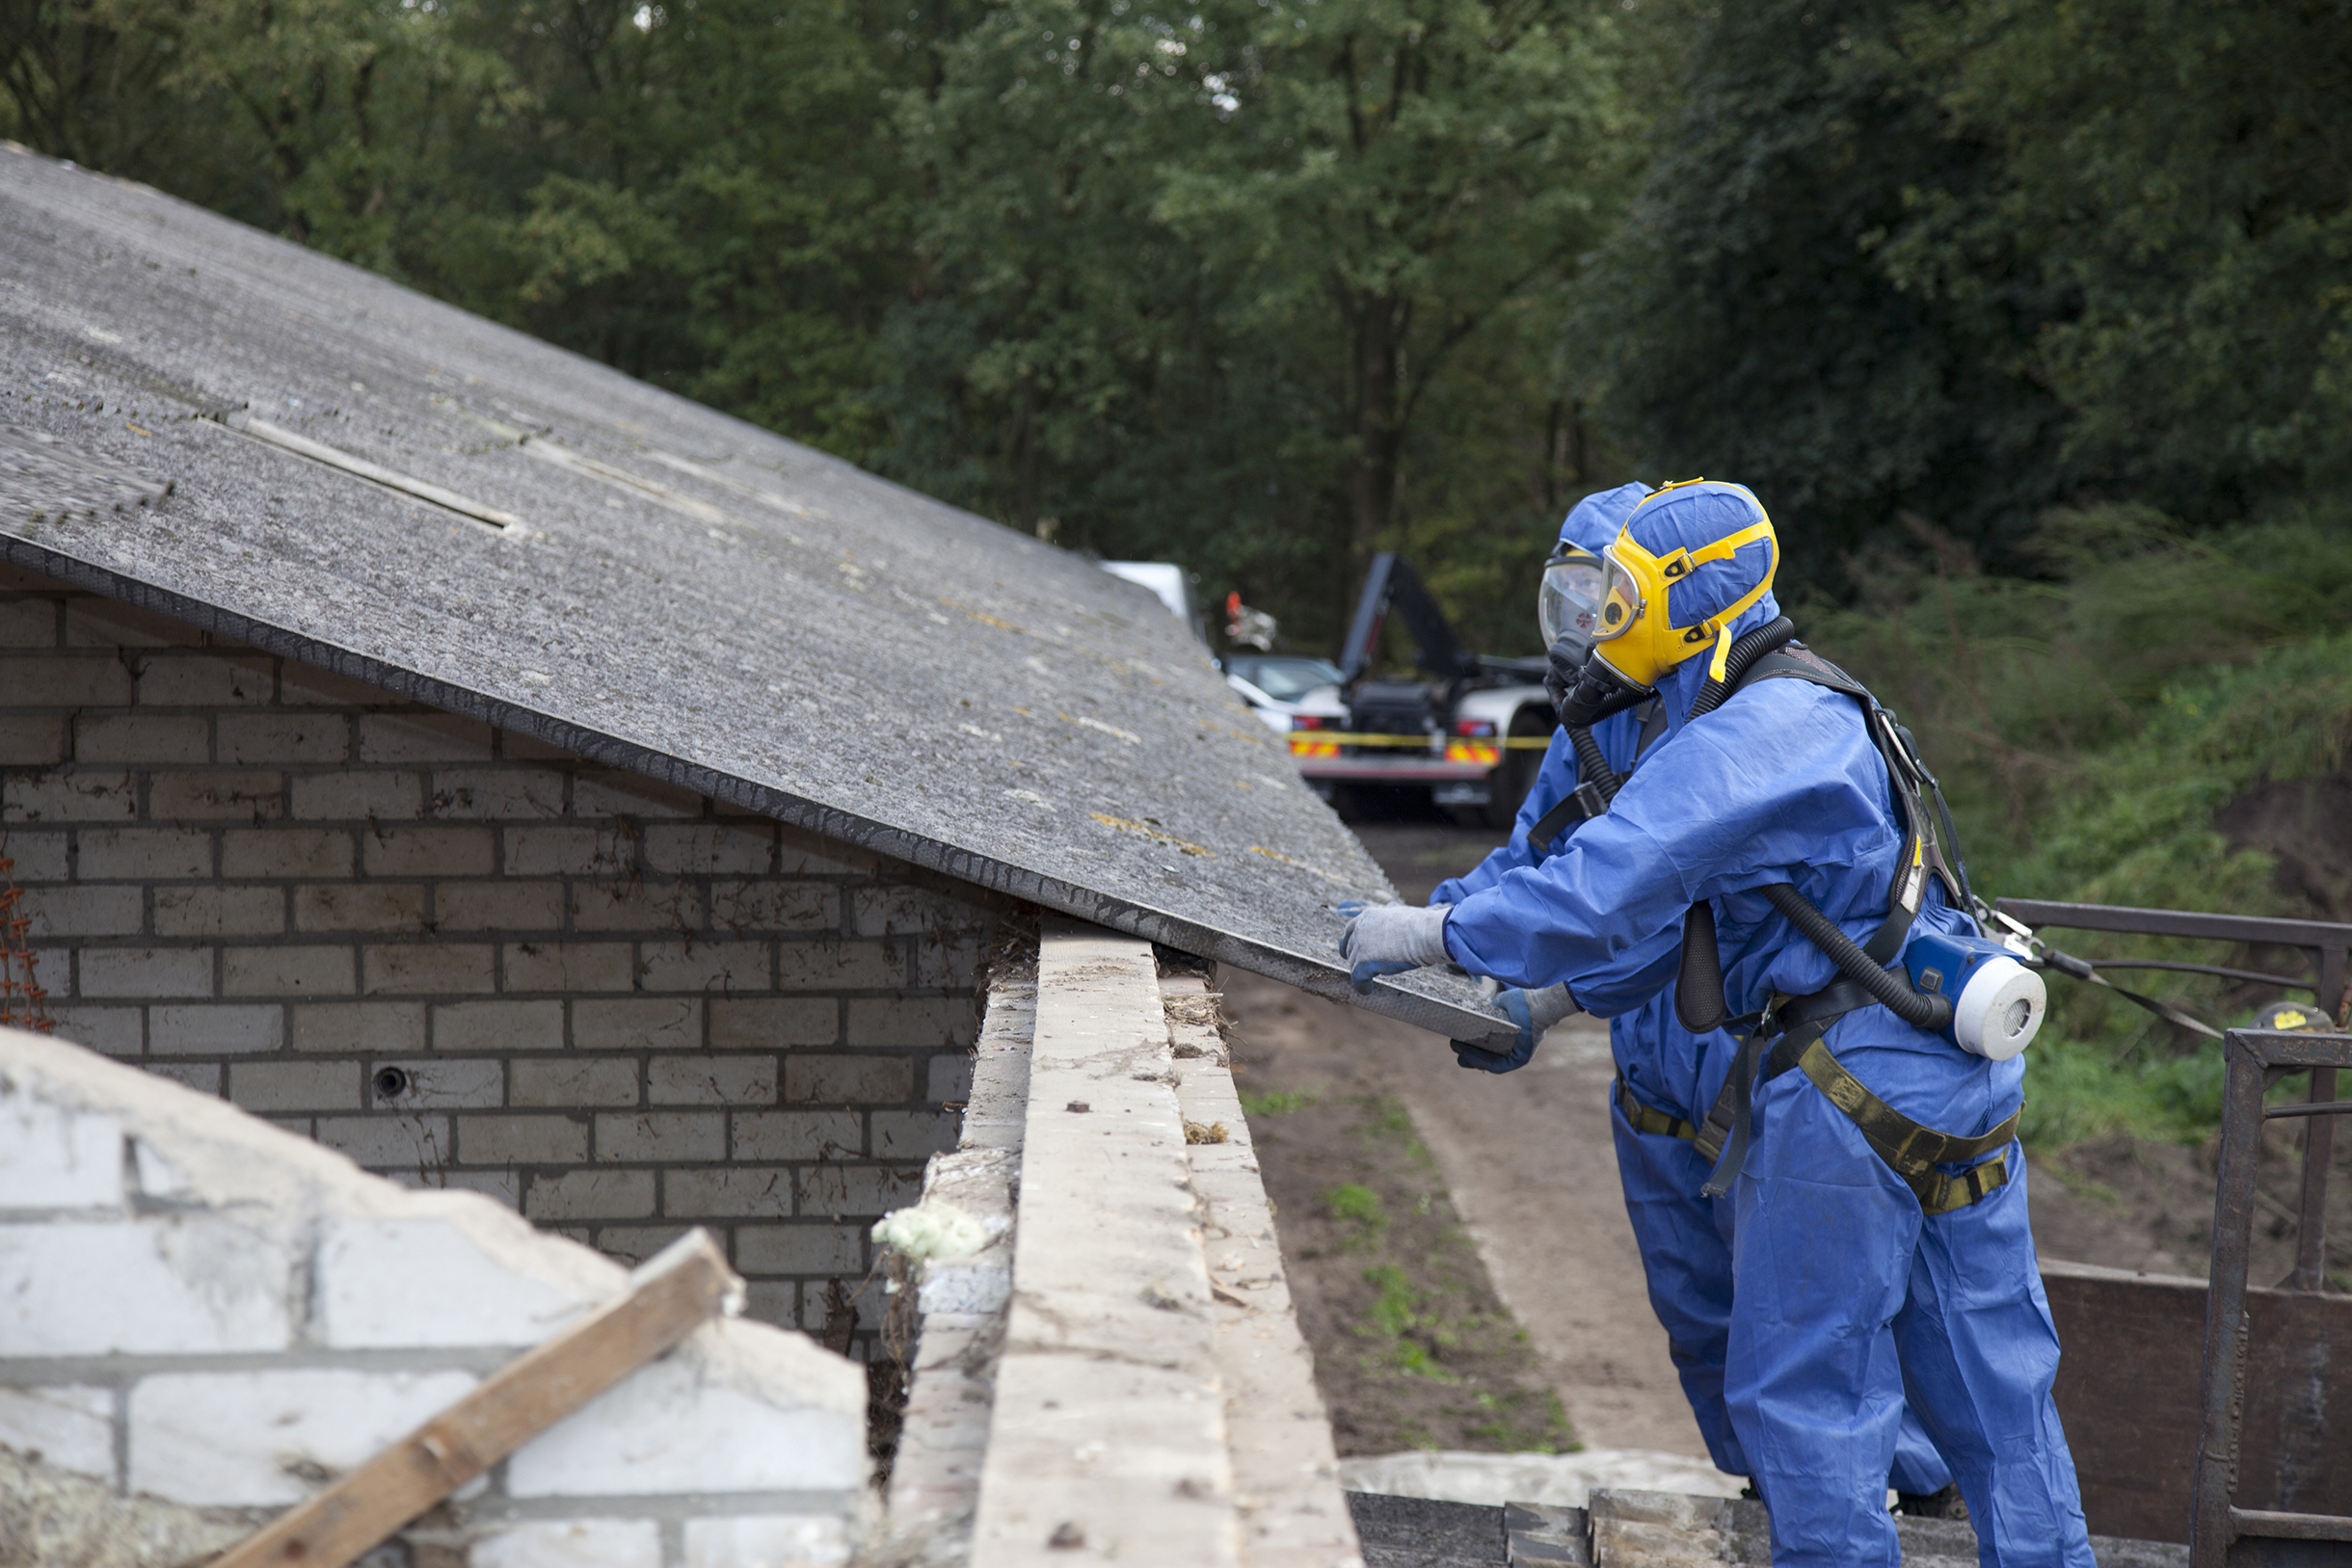 Removing Asbestos Roofing